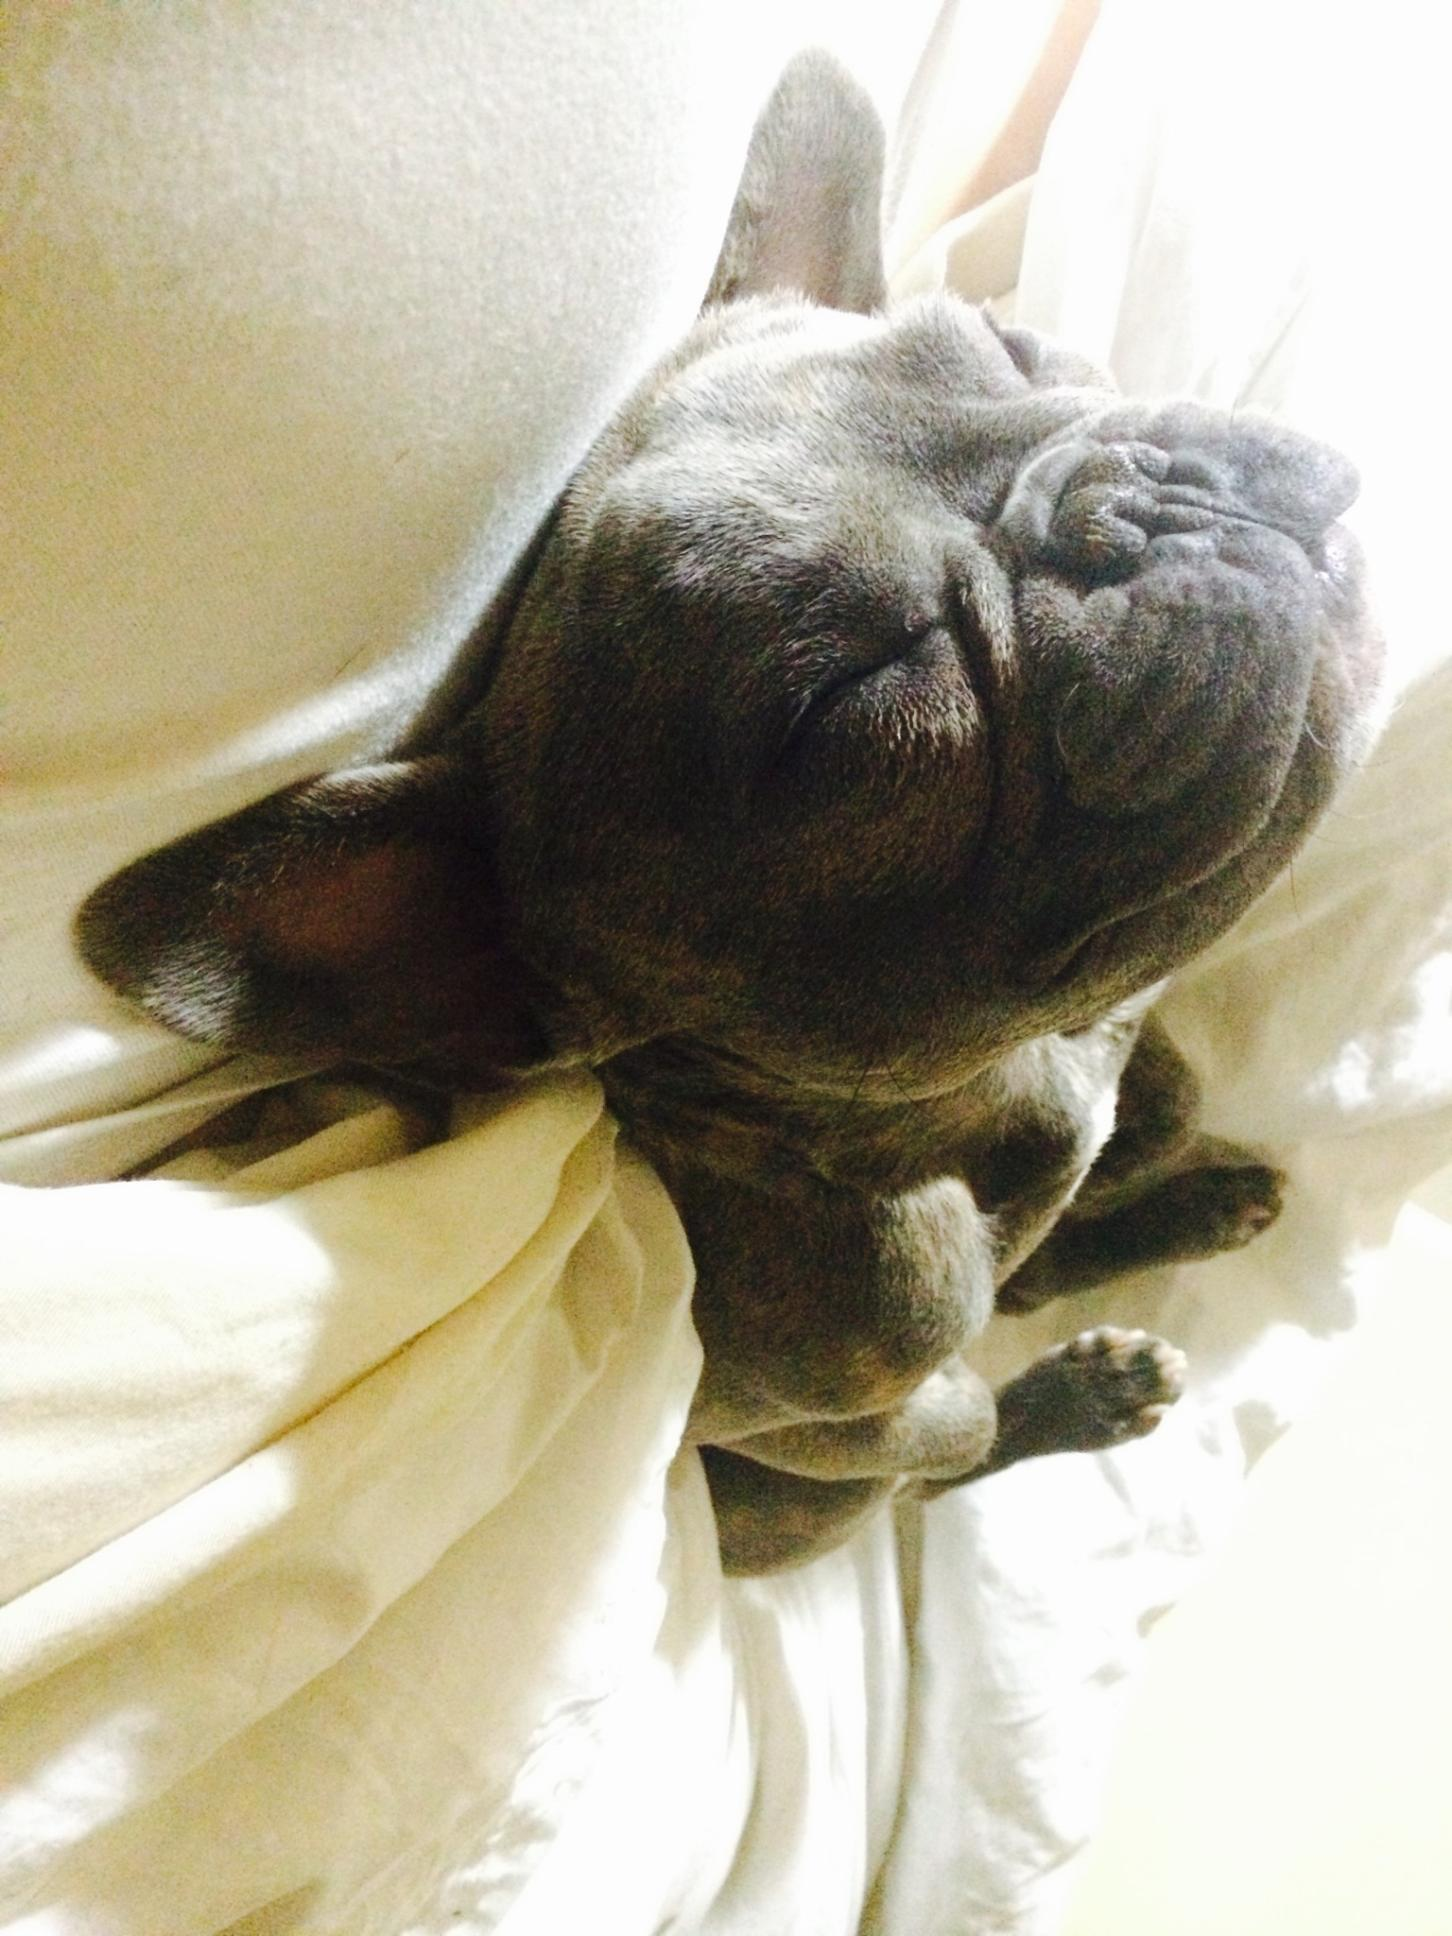 zeus the superhero frenchie sleeping on his back